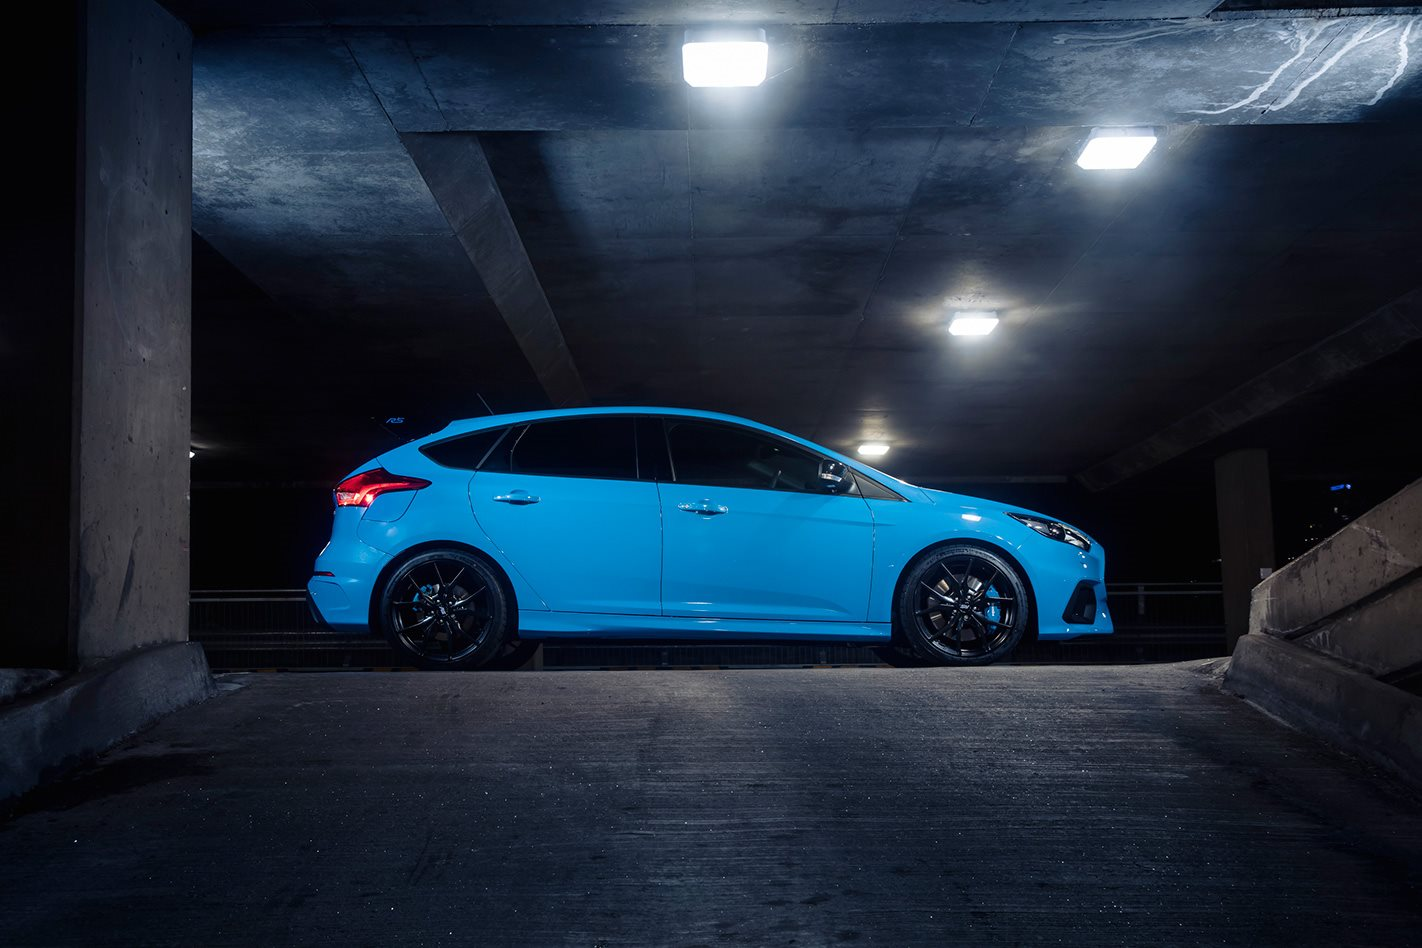 2018 Ford Focus RS Limited Edition review Ford Focus Limited Edition on 2006 ford limited edition, ford focus new york, ford cougar limited edition, ford focus elite, ford focus star wars, 2004 ford limited edition, ford focus gl, ford fusion limited edition, ford focus home, ford f-350 limited edition, ford focus profile, ford taurus limited edition, ford sport trac limited edition, ford focus neon, ford focus anniversary, ford focus xe, ford focus xlt, ford focus women, ford focus illustration, ford five hundred awd limited edition,